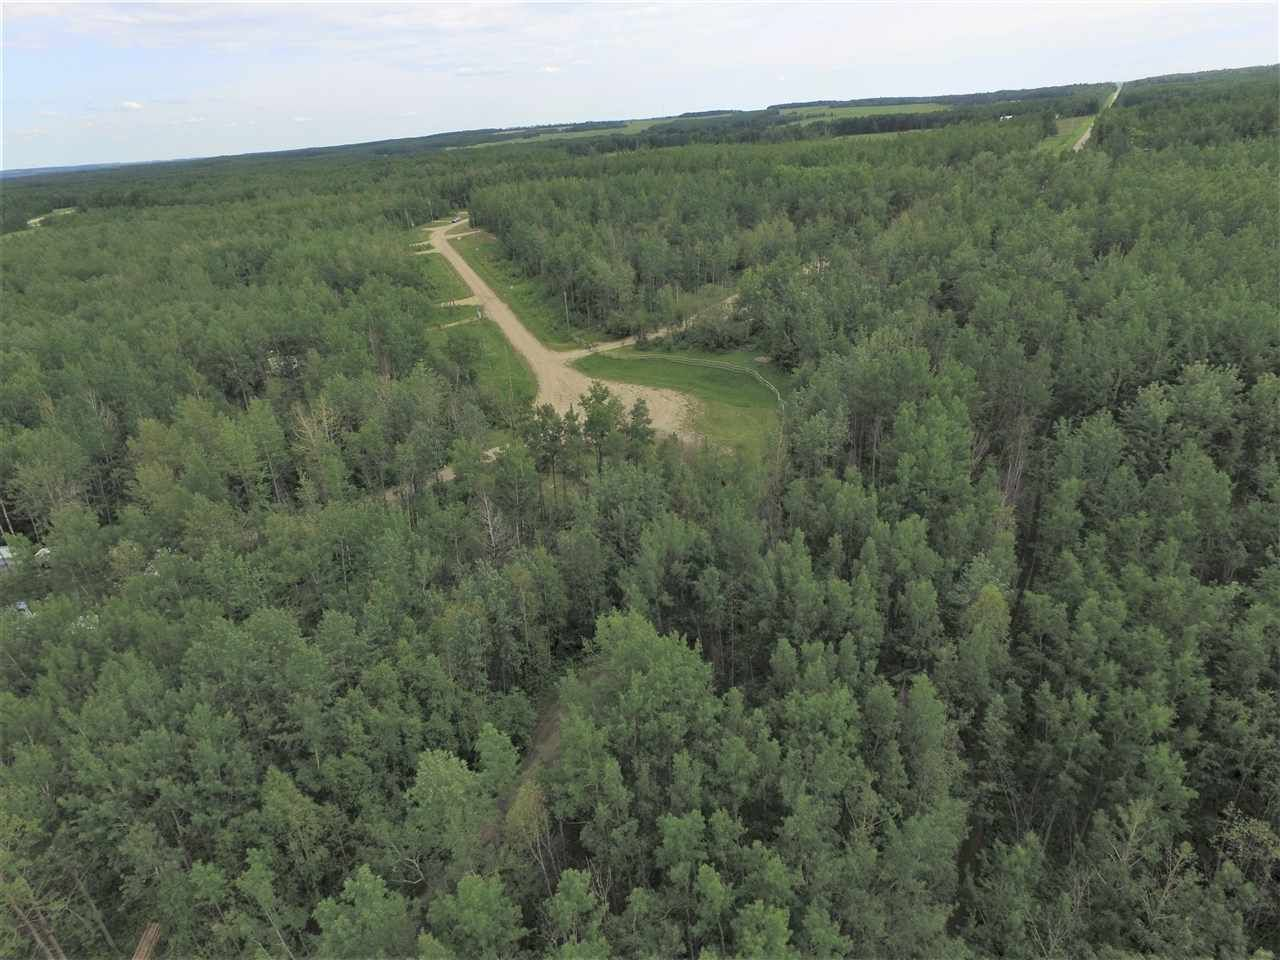 Photo 6: Photos: #11 13070 Twp Rd 464: Rural Wetaskiwin County Rural Land/Vacant Lot for sale : MLS®# E4195644